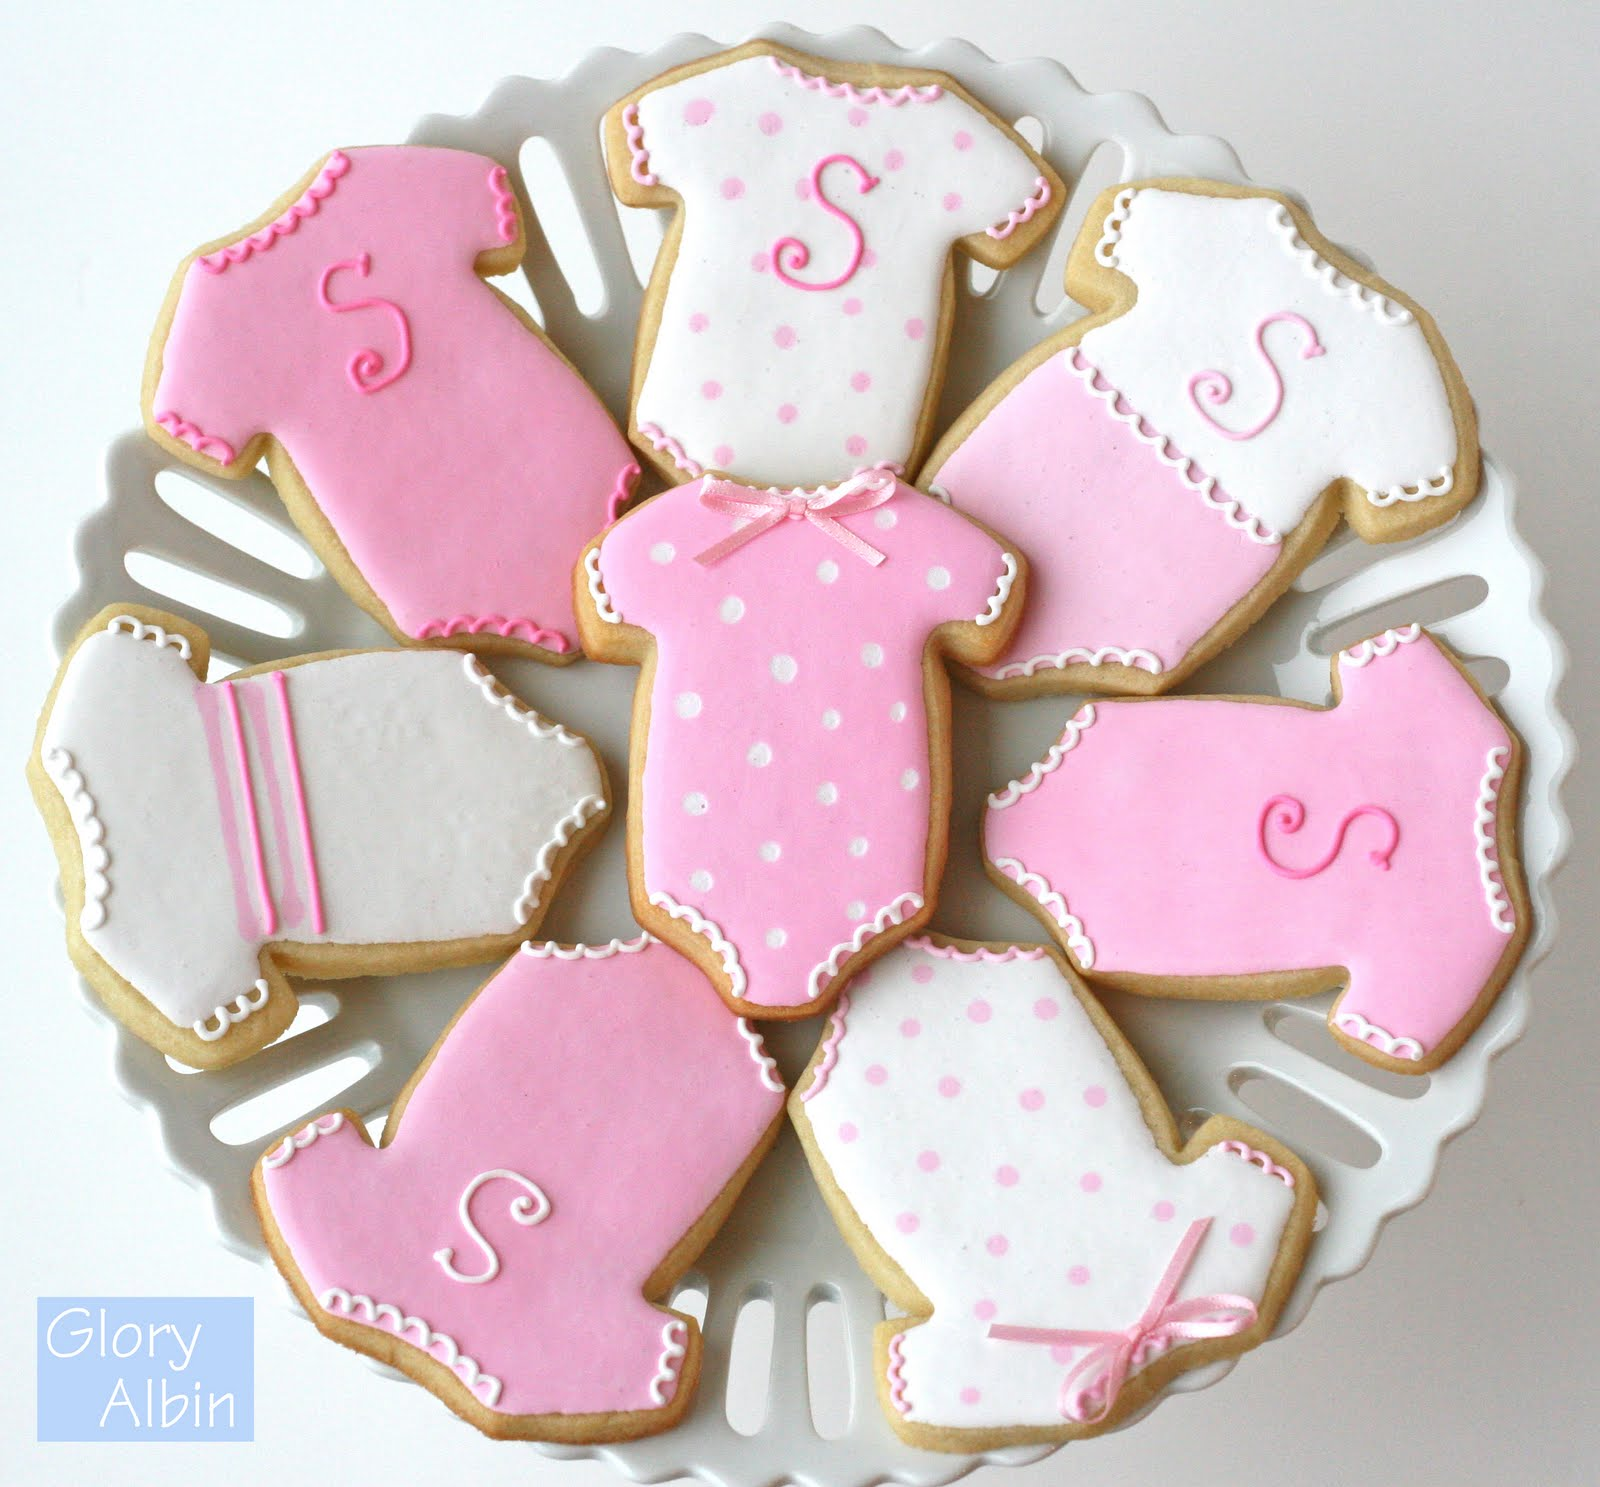 Best Decorating Sugar Cookies With Royal Icing – Glorious Treats This Month